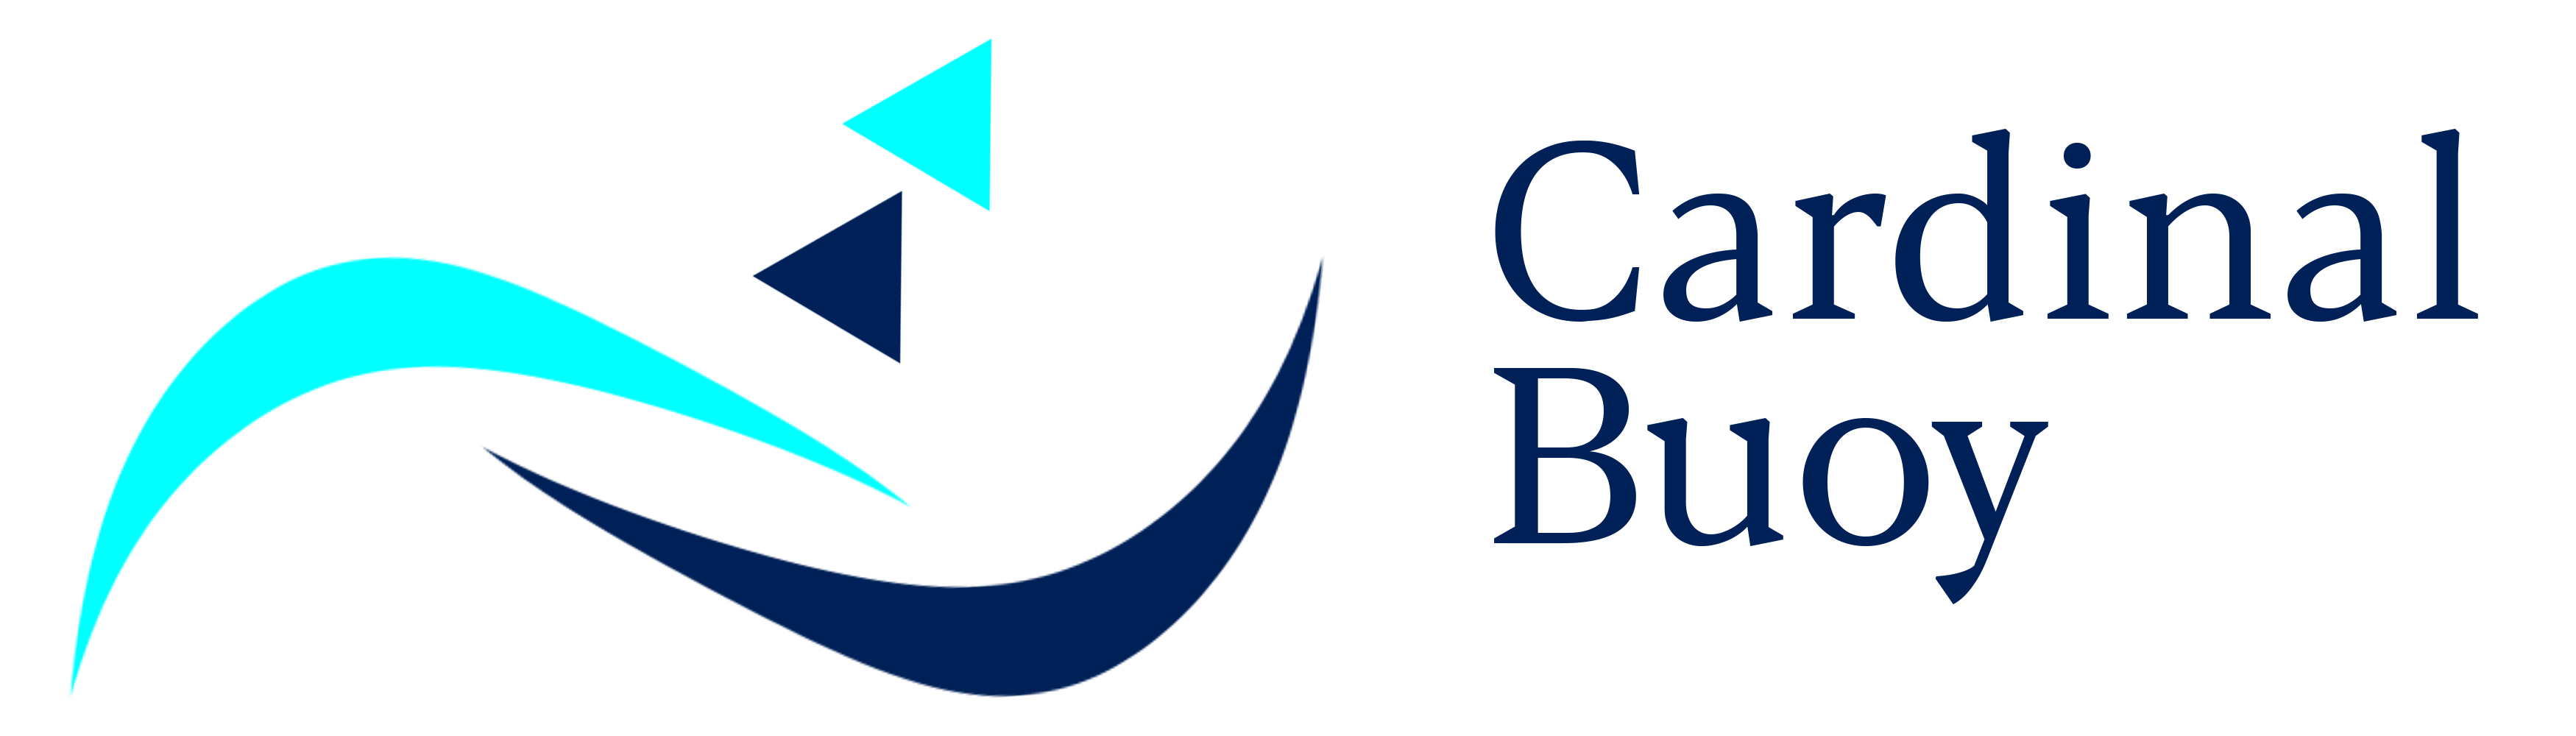 cardinal buoy financials logo